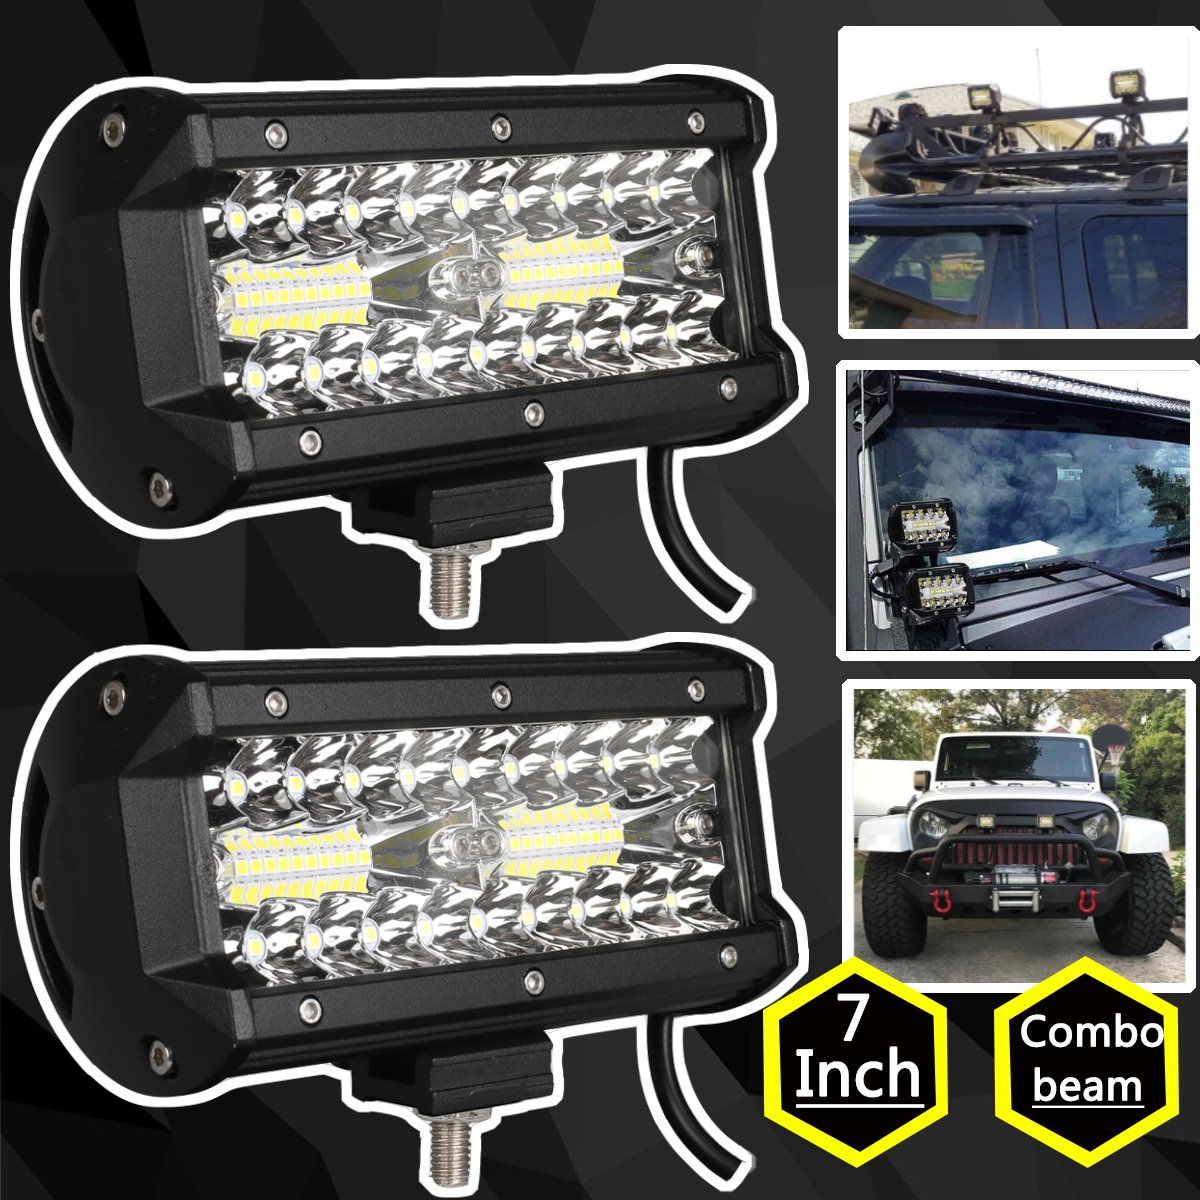 2Pcs Waterproof 120W Car SUV Offroad Dual Color LED Work Light Fog Driving Light